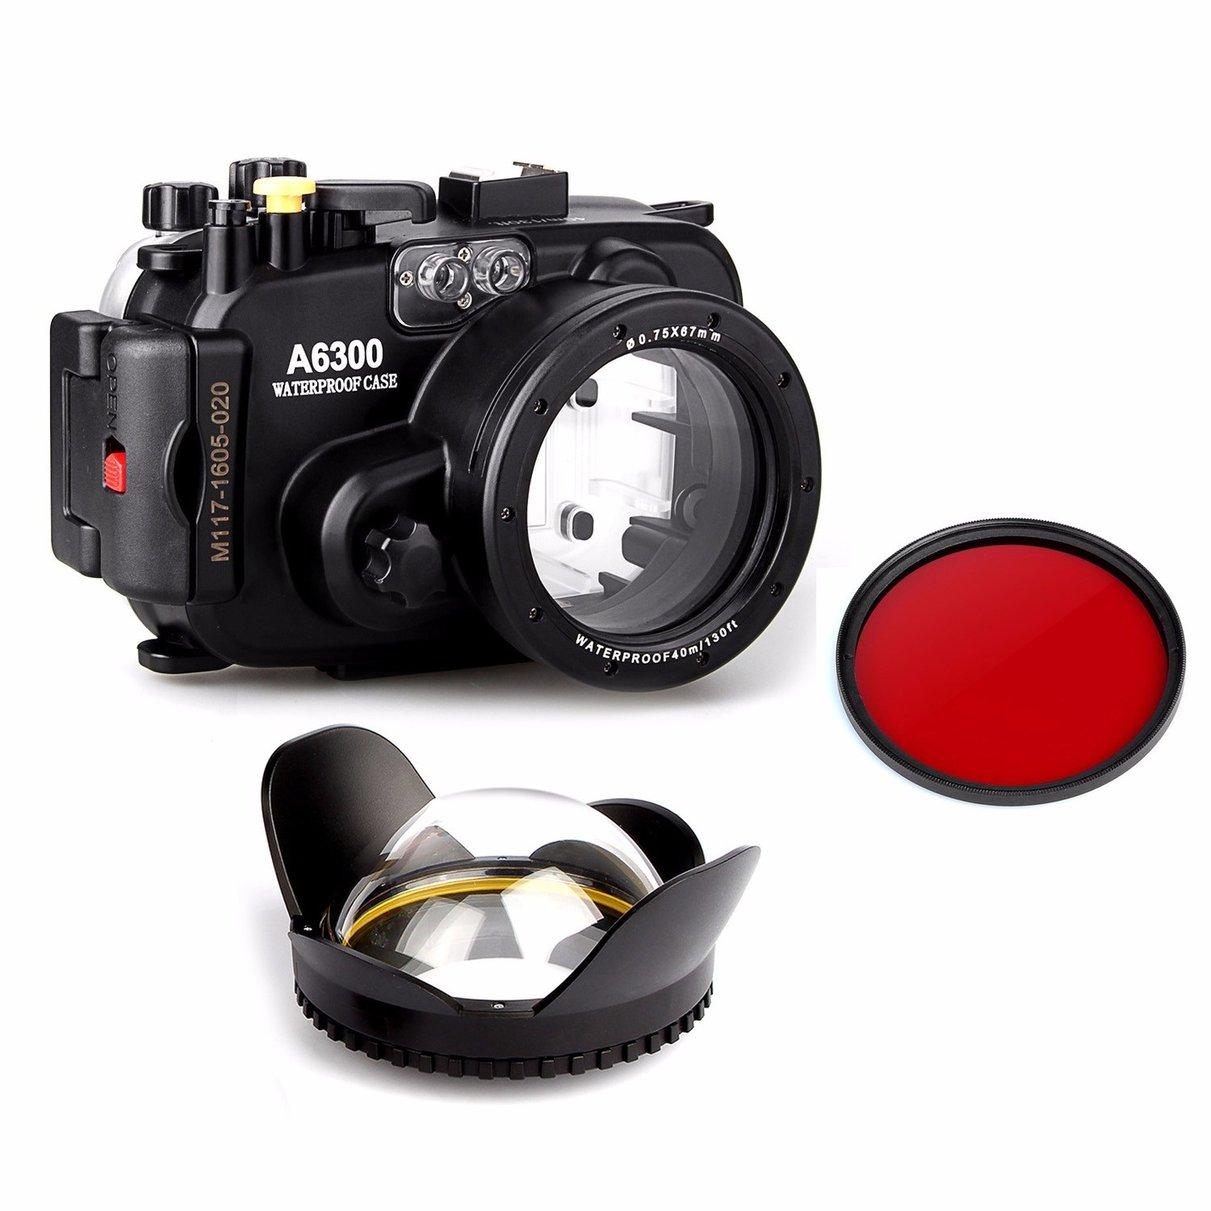 Meikon 130ft Underwater Camera Housing Case for sony A6300 Camera + Wide Angle Dome Port lens + 67mm red filter meikon 40m 130ft waterproof underwater camera housing case for a6300 dome port lens